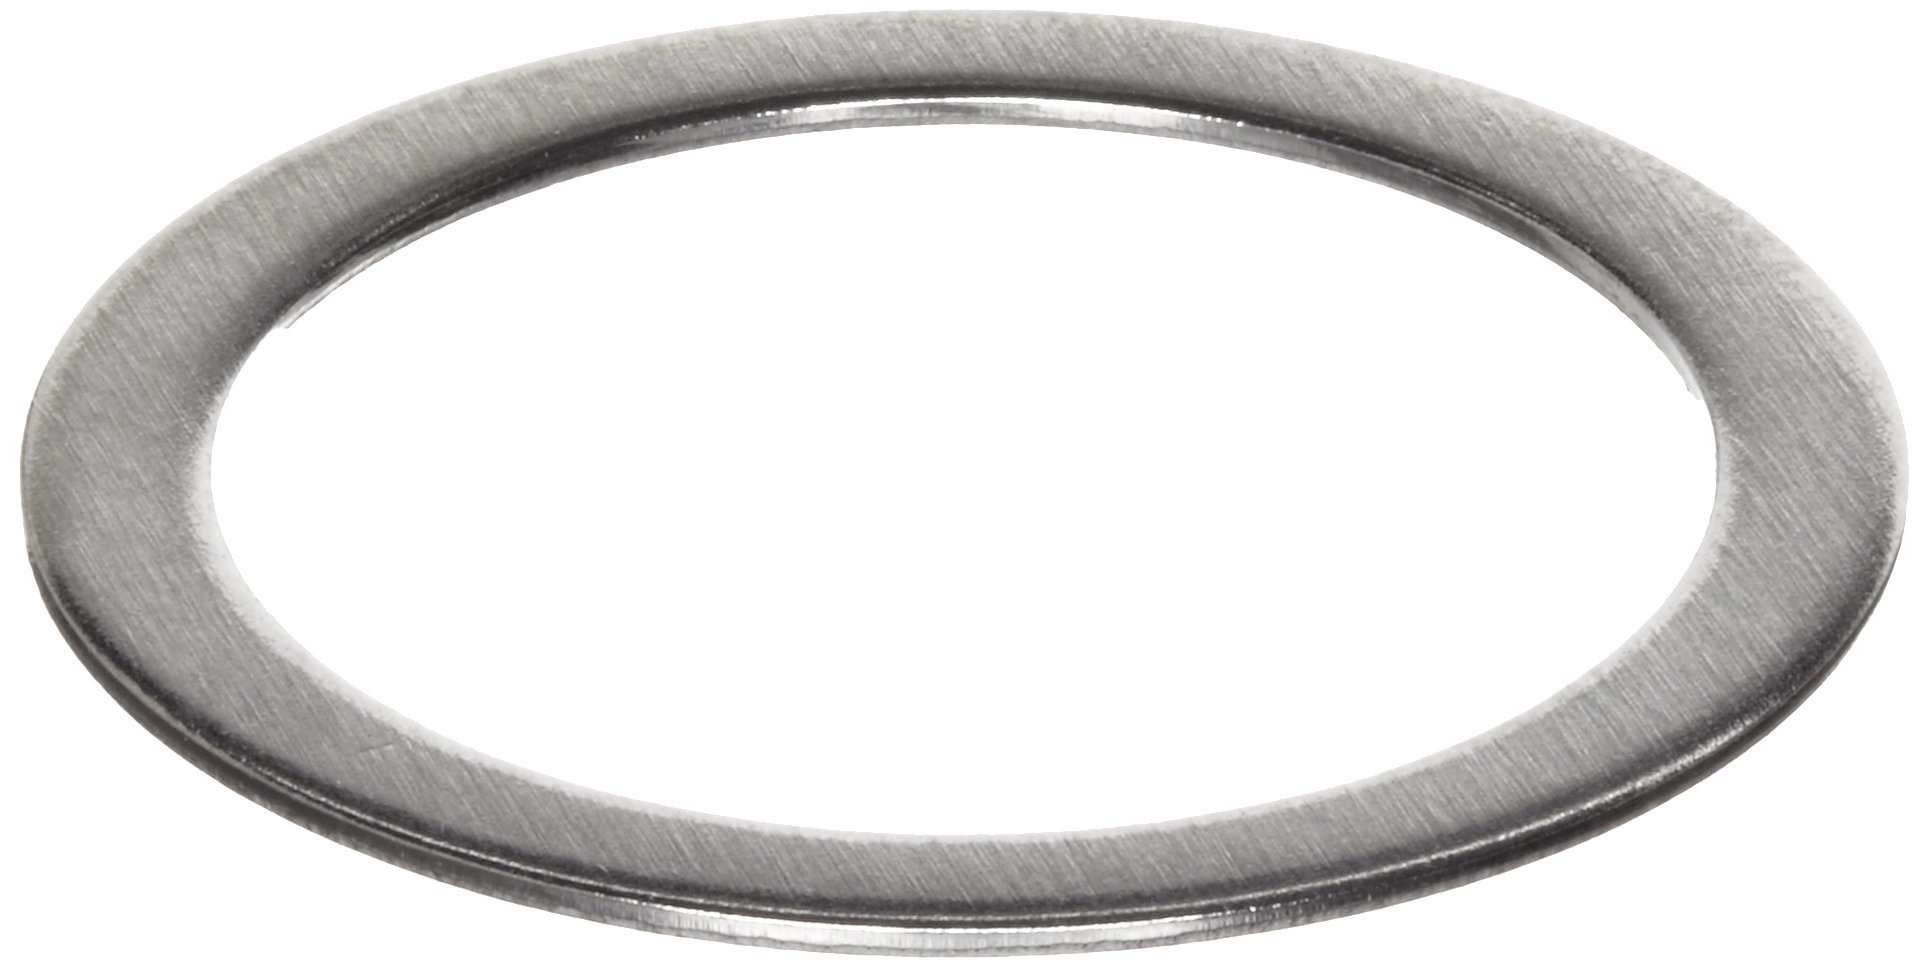 18-8 Stainless Steel Round Shim, Unpolished